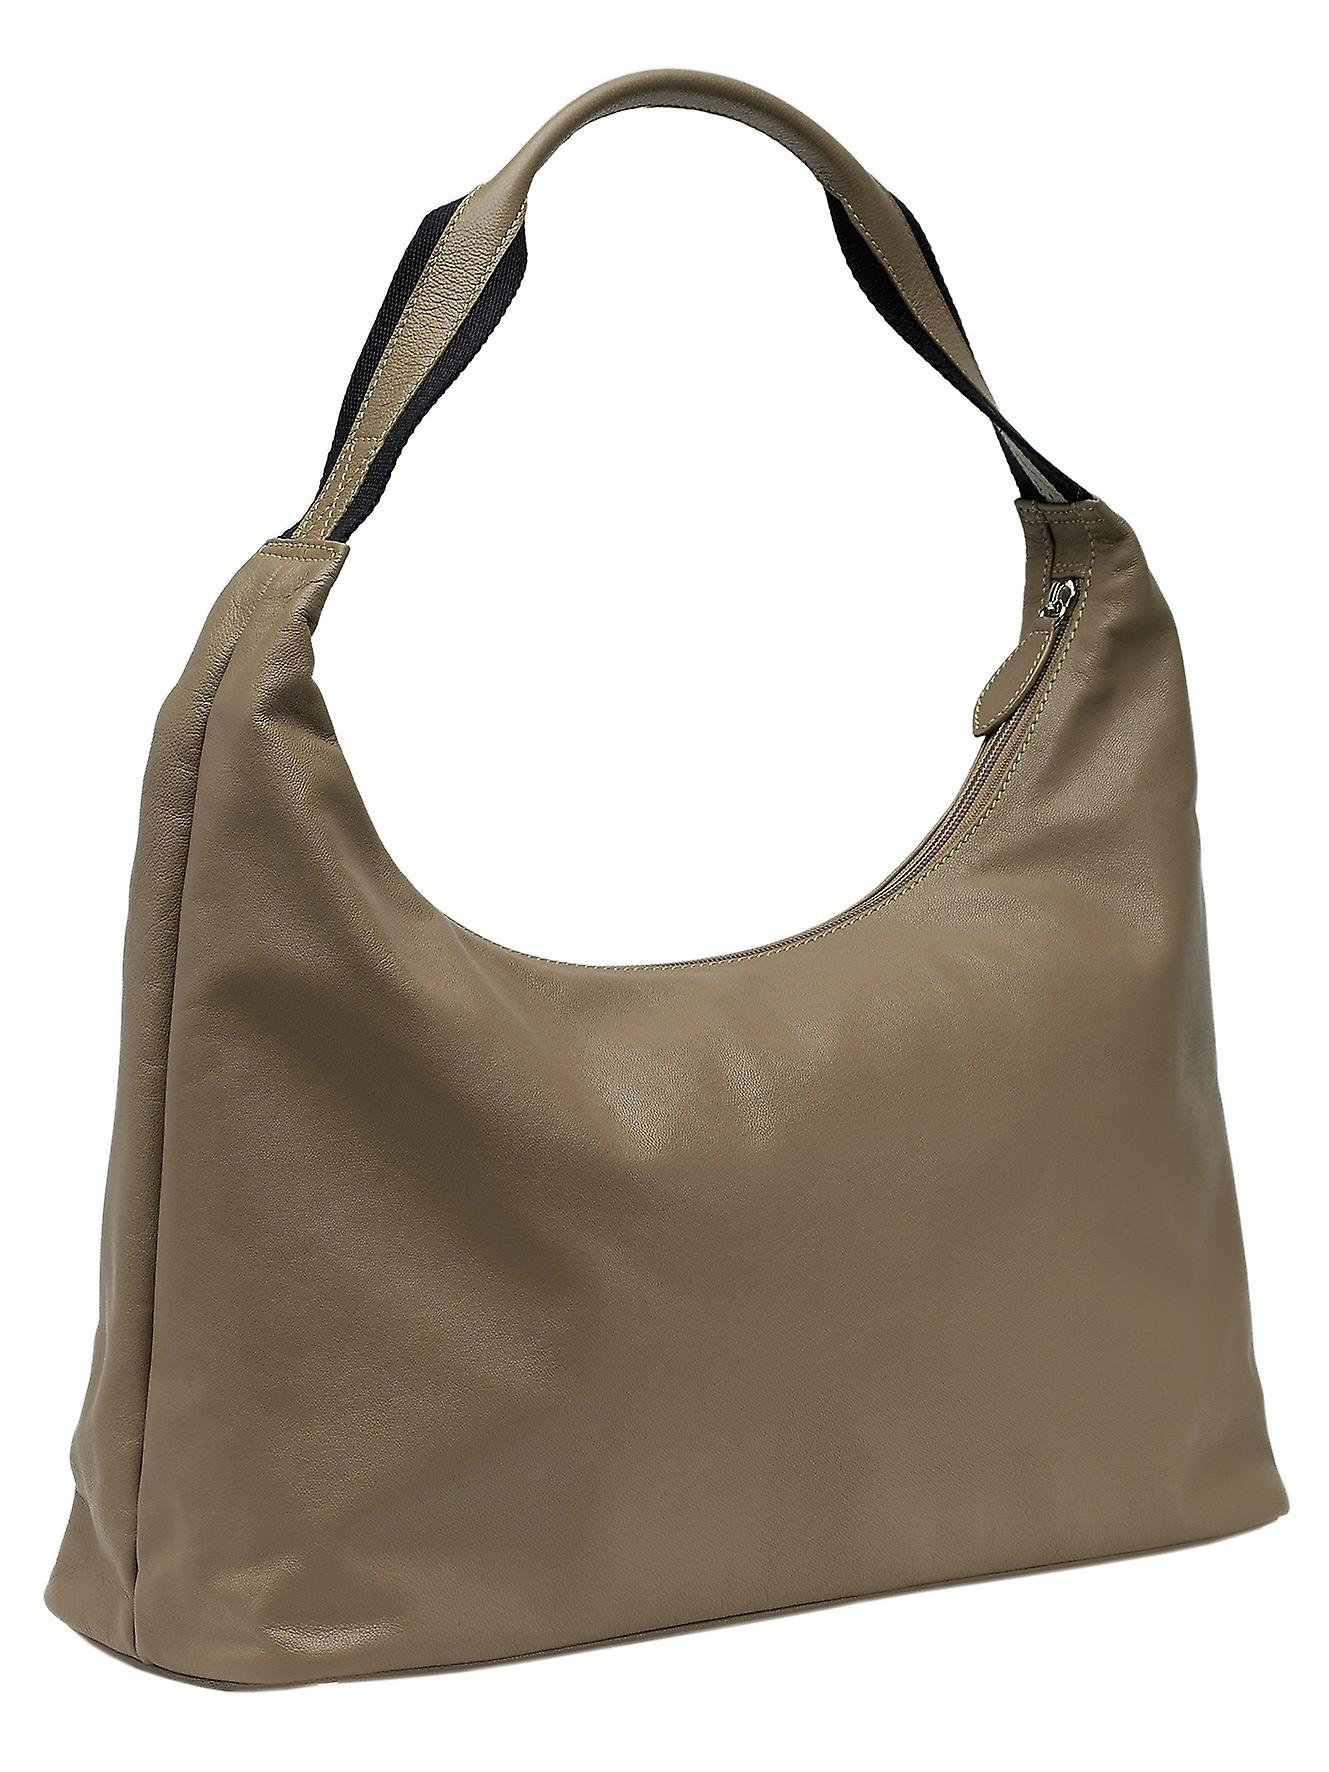 Burgmeister ladies shoulder bag T207-115B leather taupe